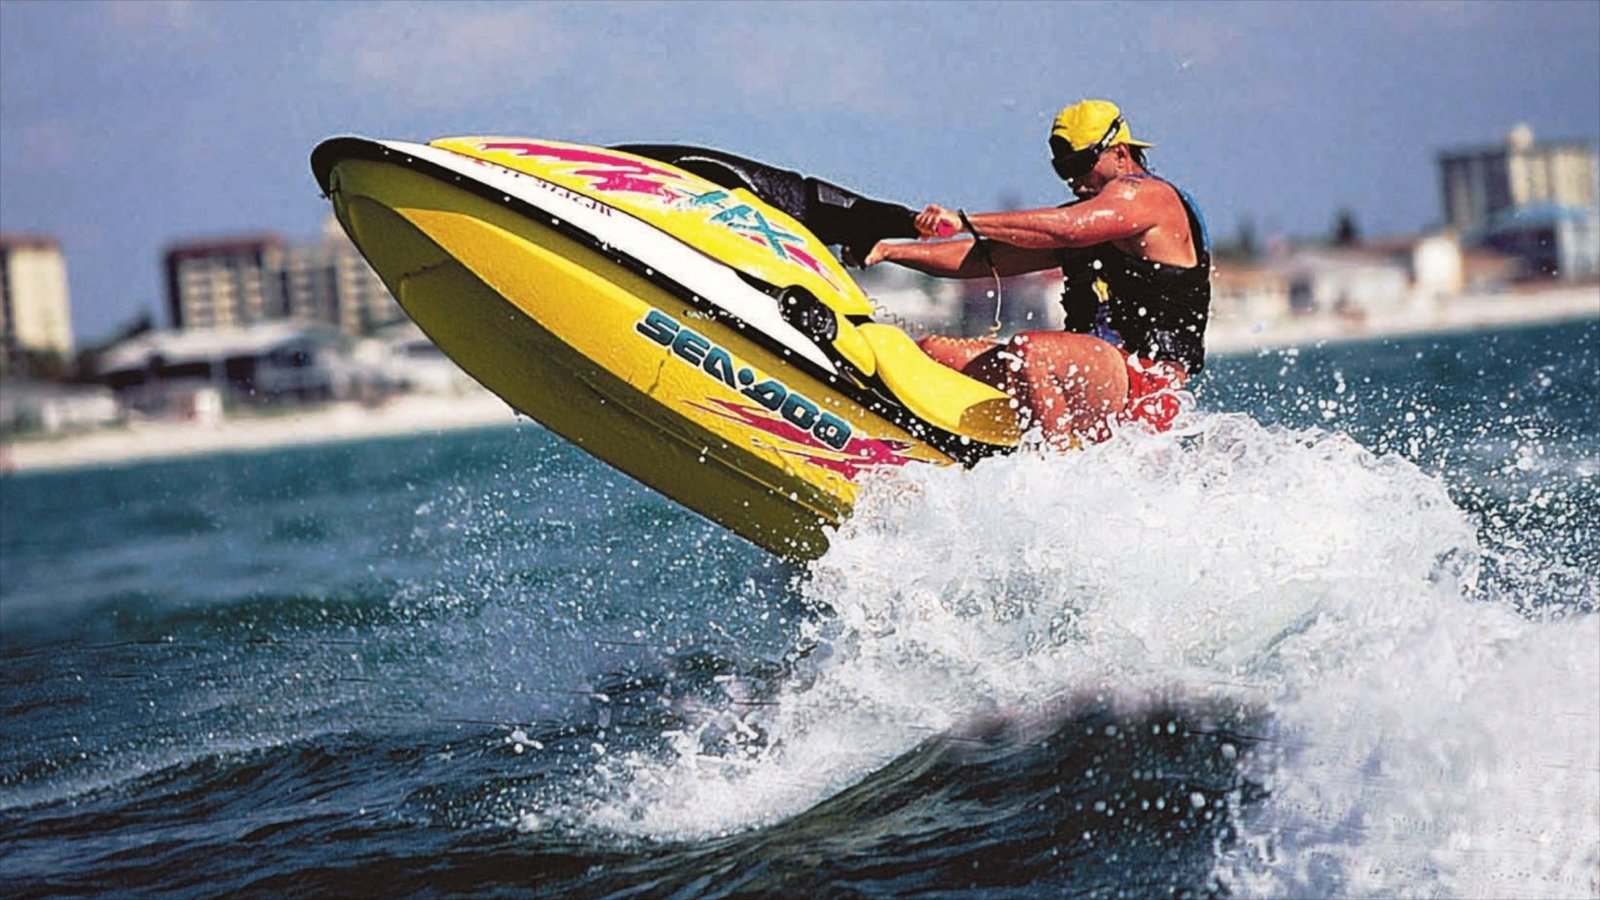 Clearwater Beach which includes waves and jet skiing as well as an individual male